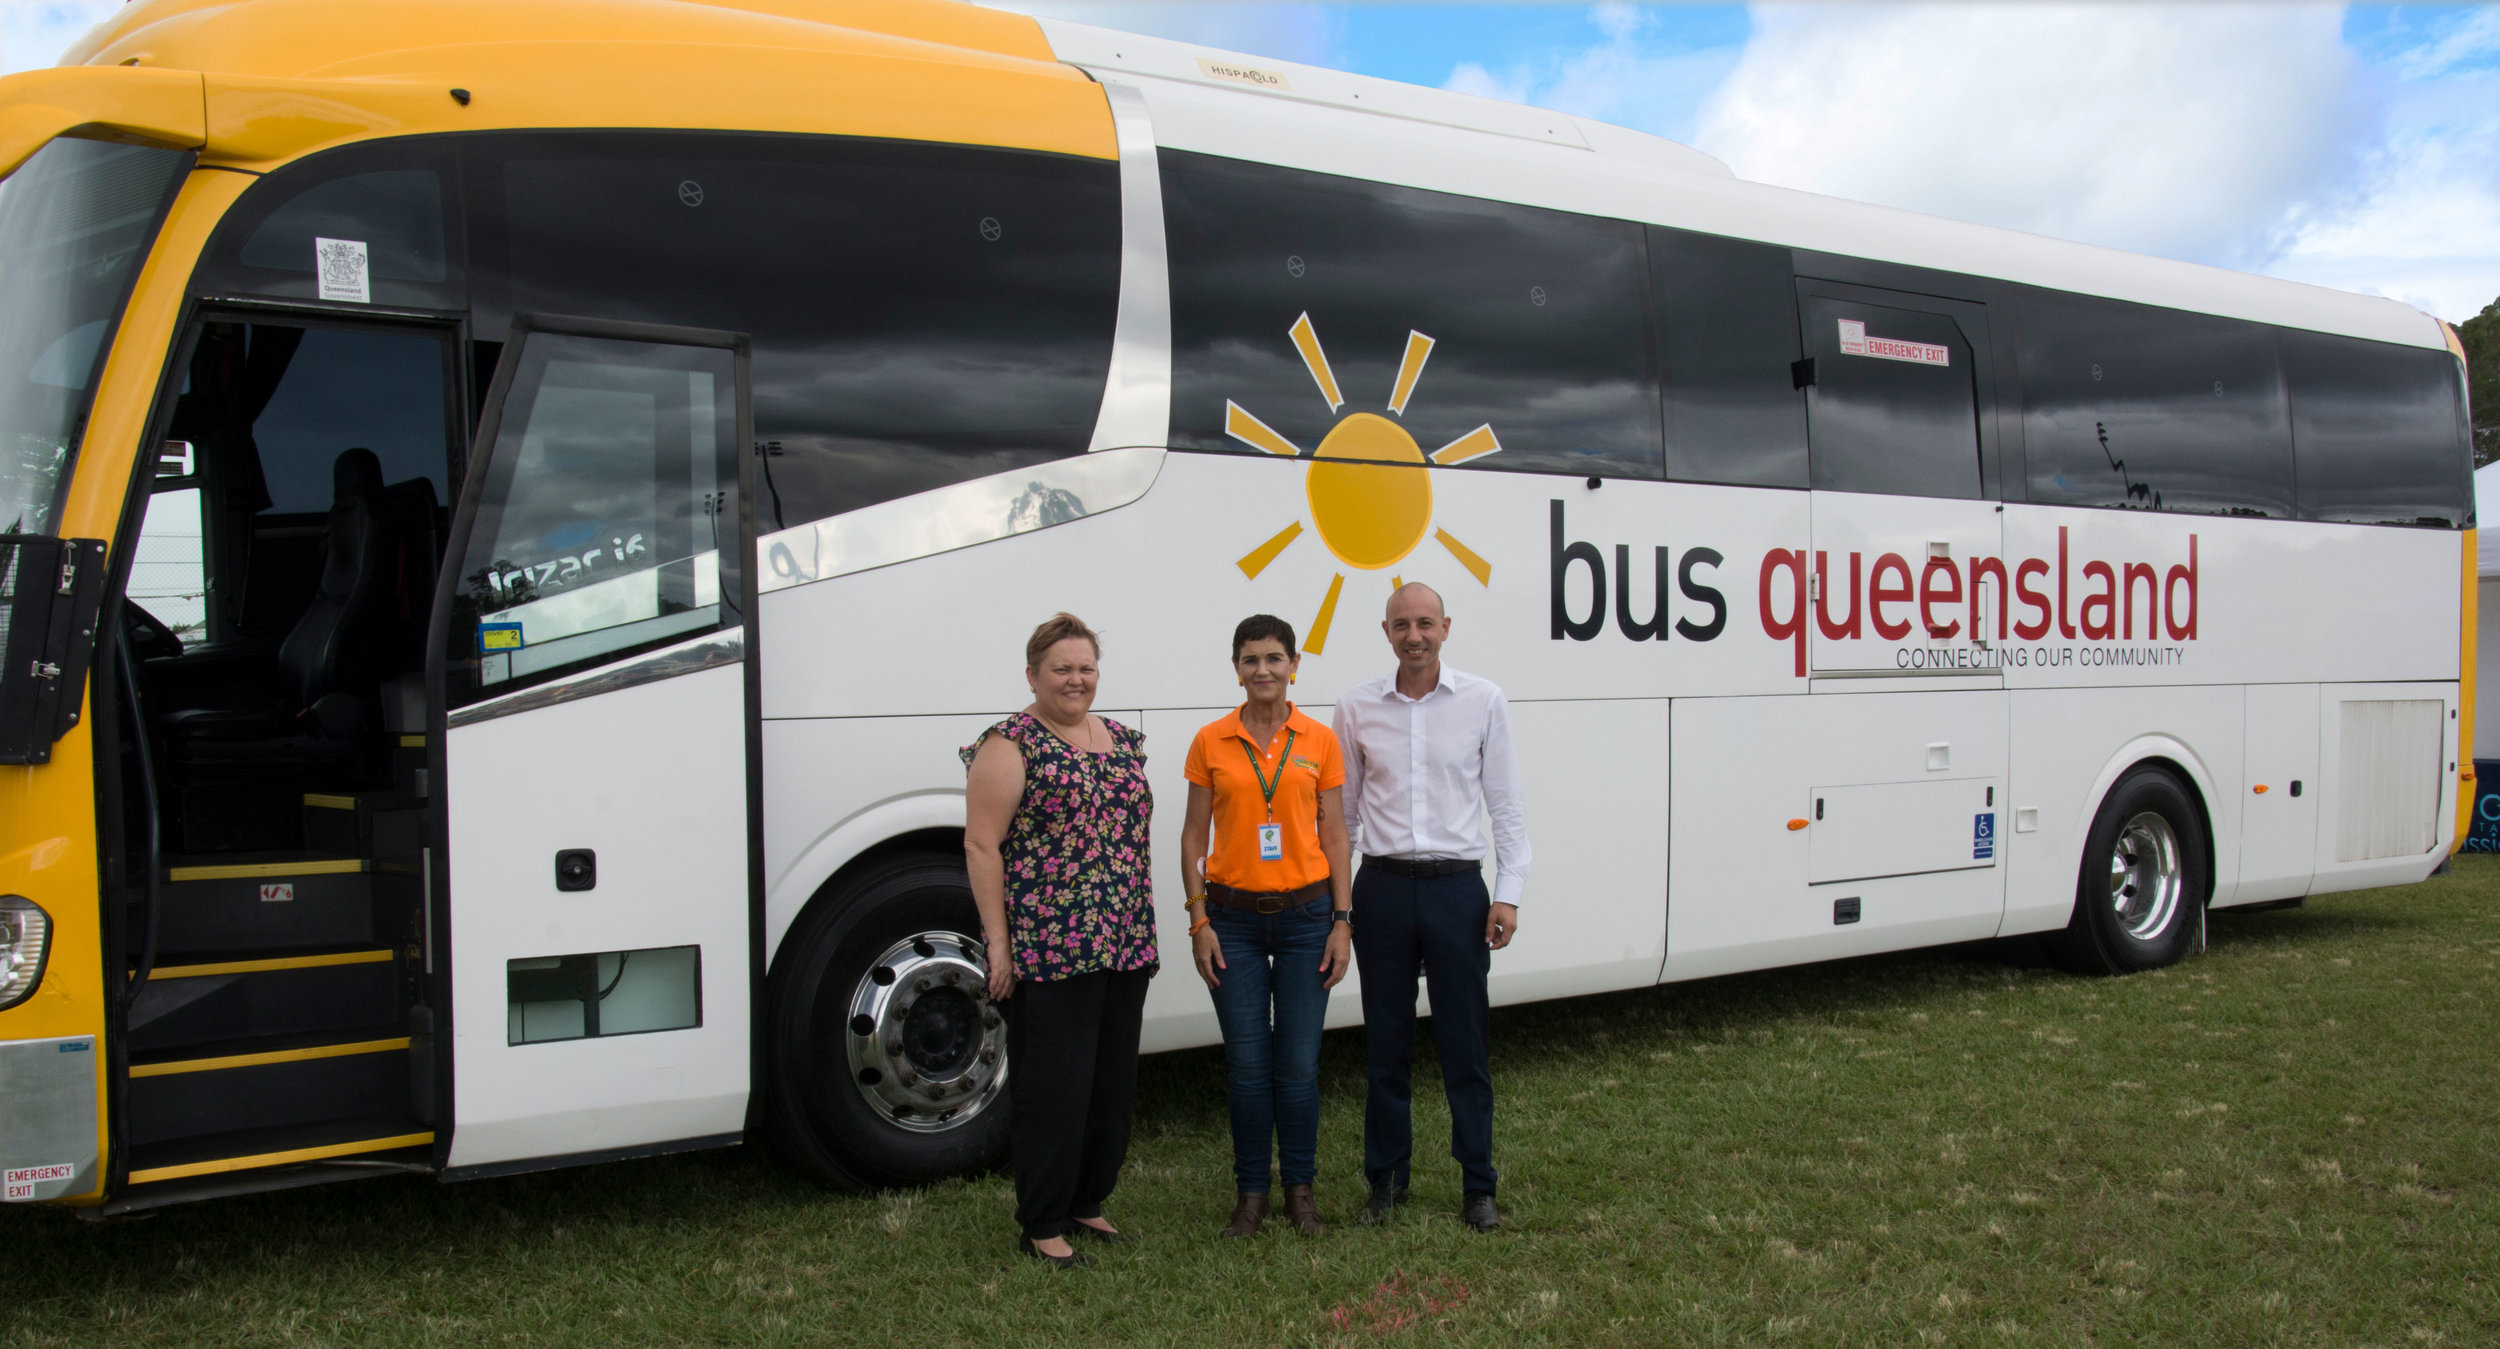 - From the left, Nicole Phillips - Depot Manager at Bus Queensland (Locker Valley),Tanya Milligan -Mayor of Lockyer Valley and Adam Pulitano -Pulitano Group Managing Director.